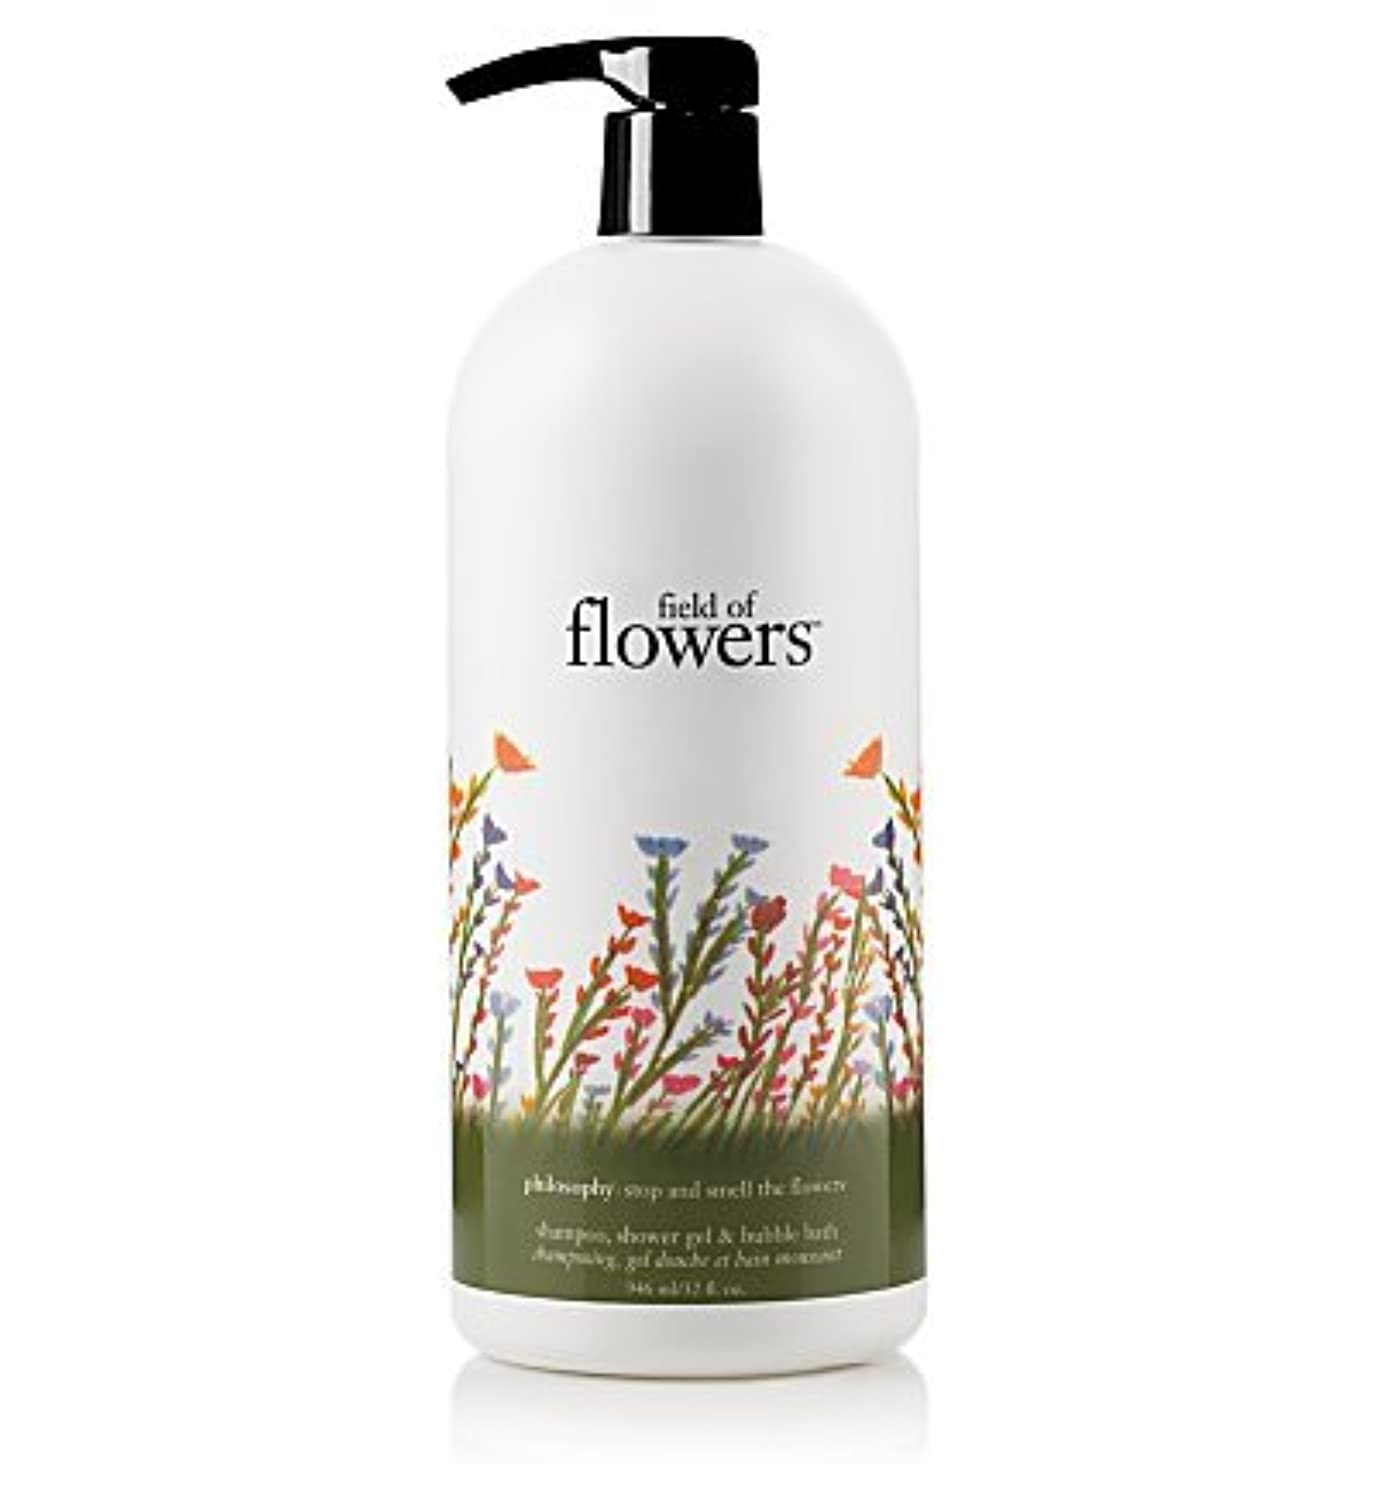 連鎖意志データムfield of flowers (フィールド オブ フラワーズ) 32.0 oz (960ml) shampoo, shower gel & bubble bath for Women